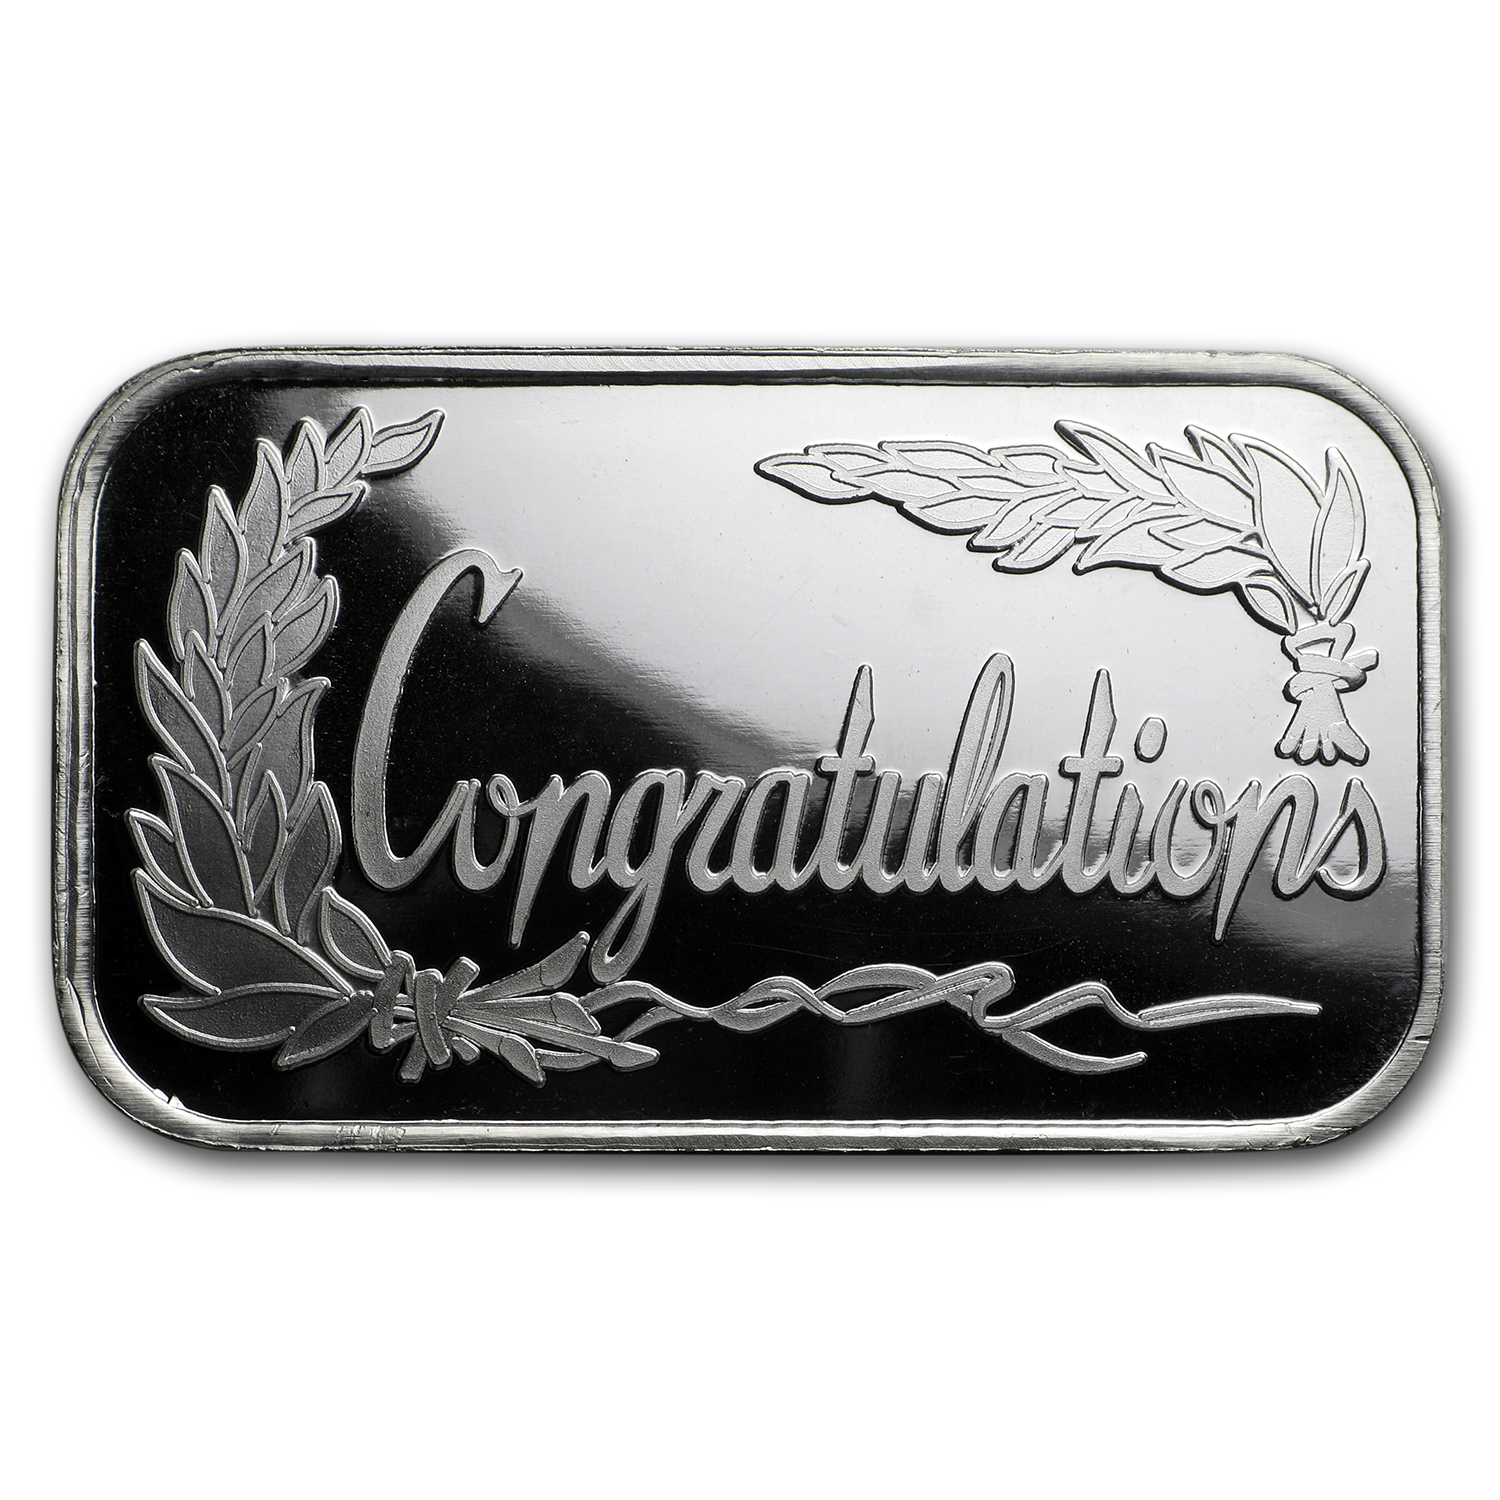 1 oz Silver Bar - Congratulations 2017